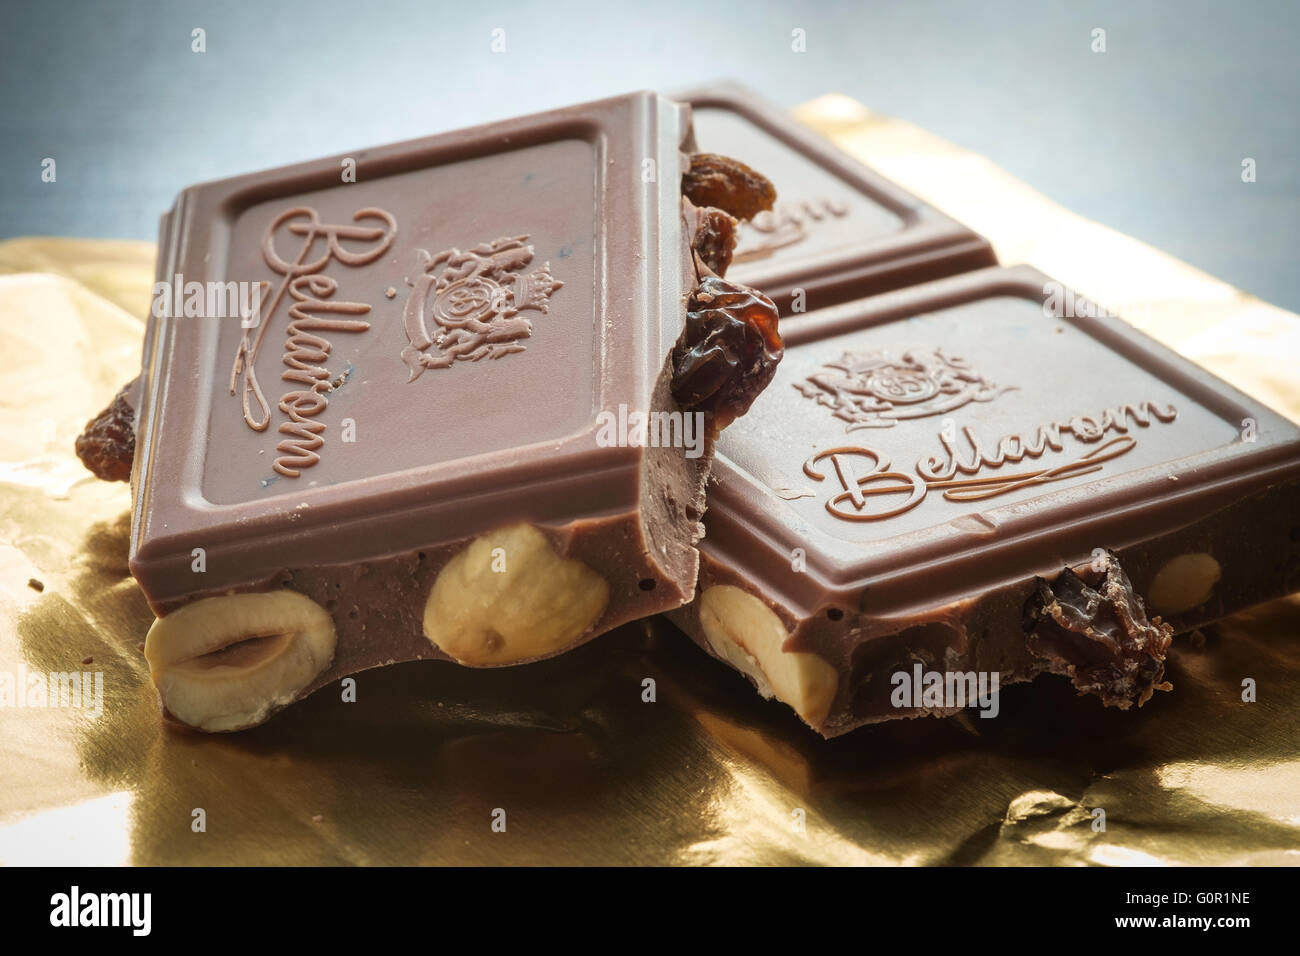 Pieces of Fruit and Nut Milk Chocolate - Stock Image